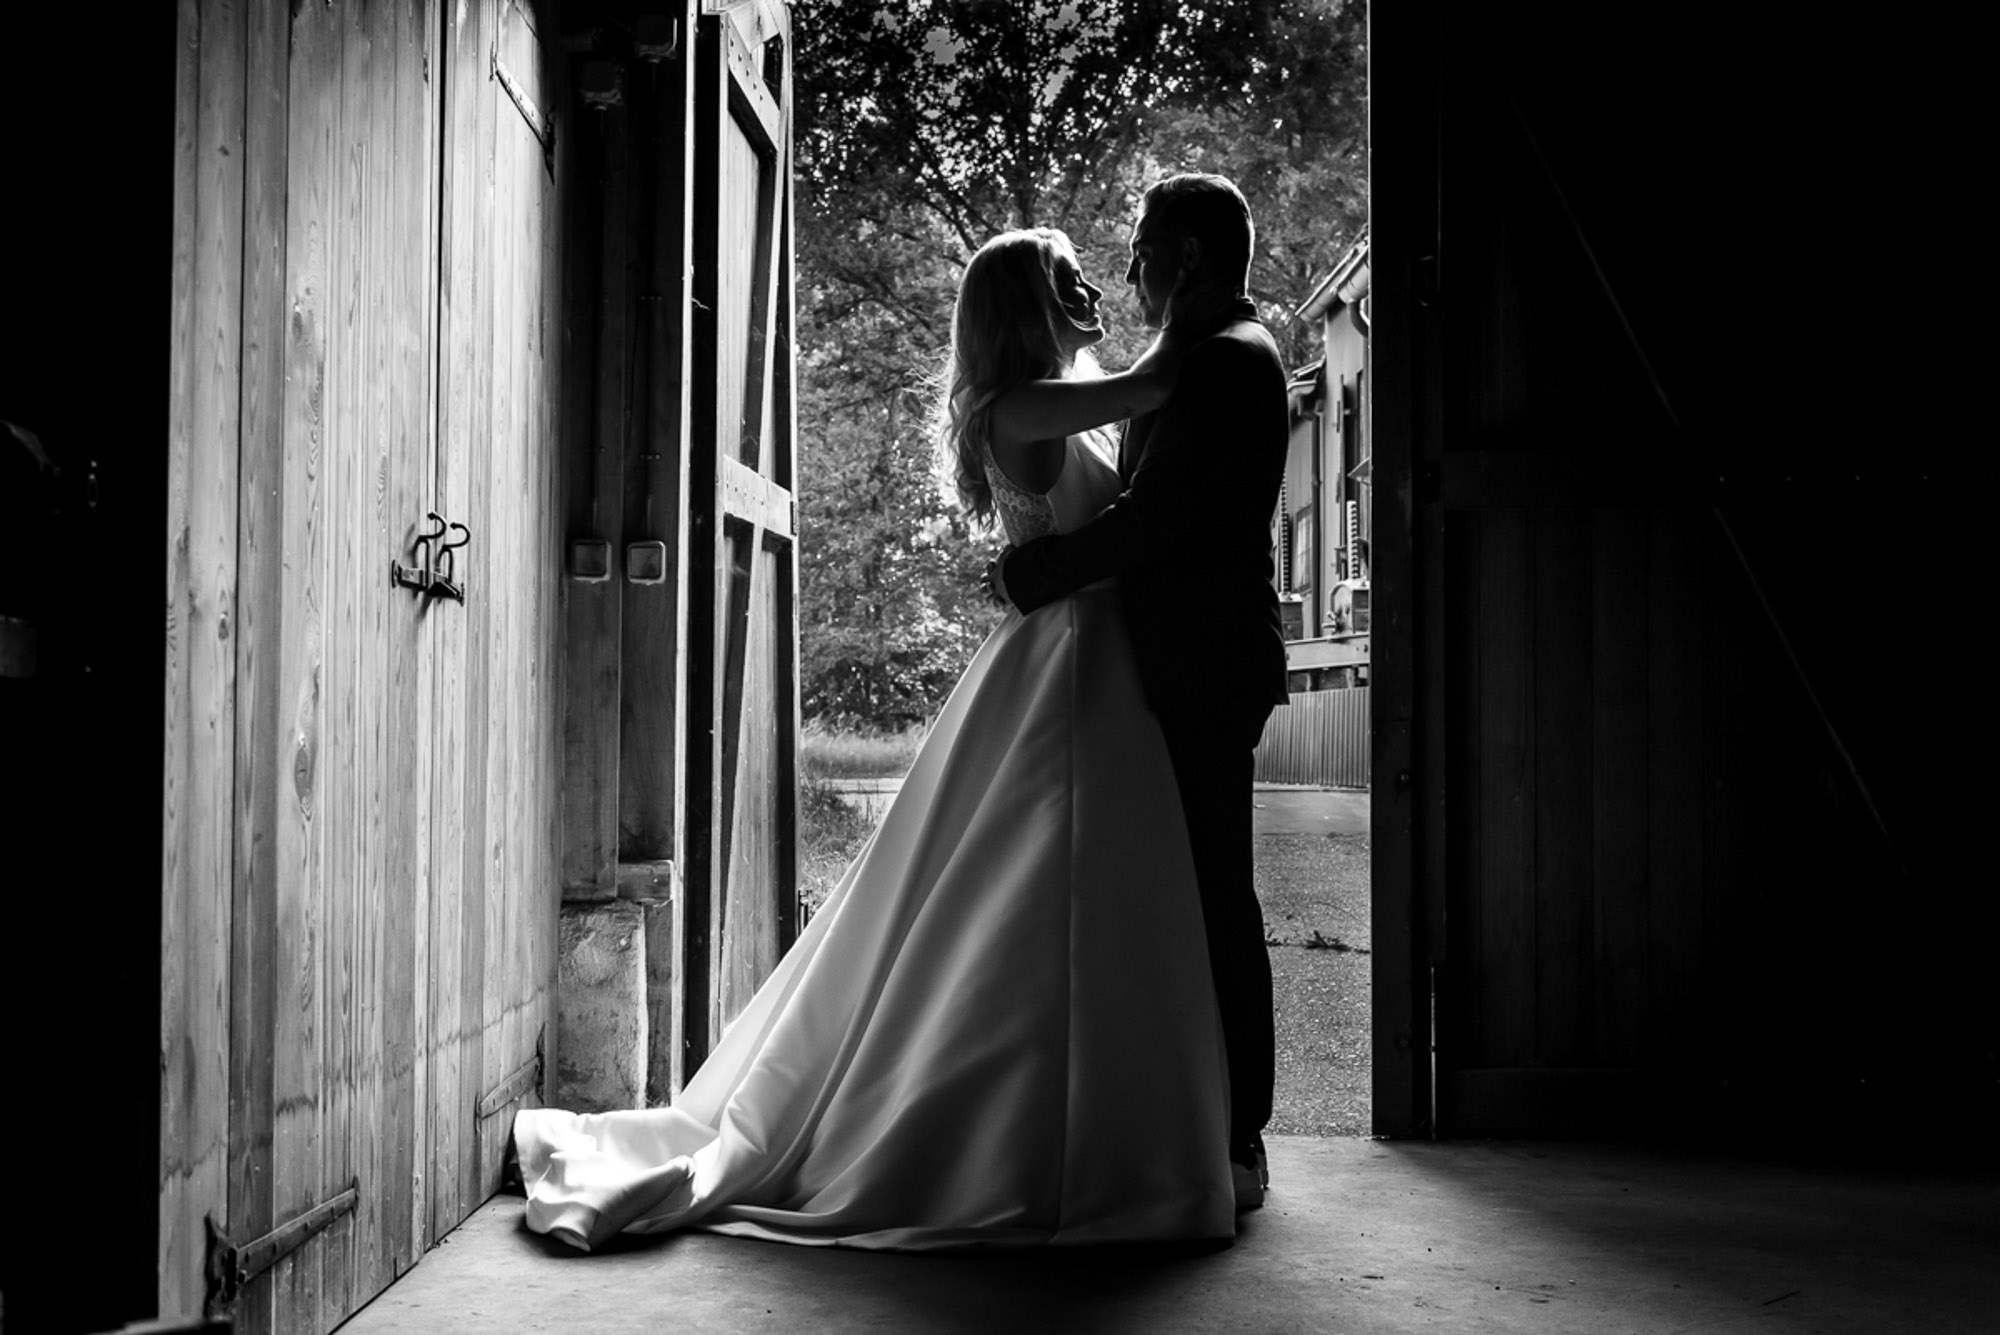 WeGraphy-Wedding Photography- after wedding